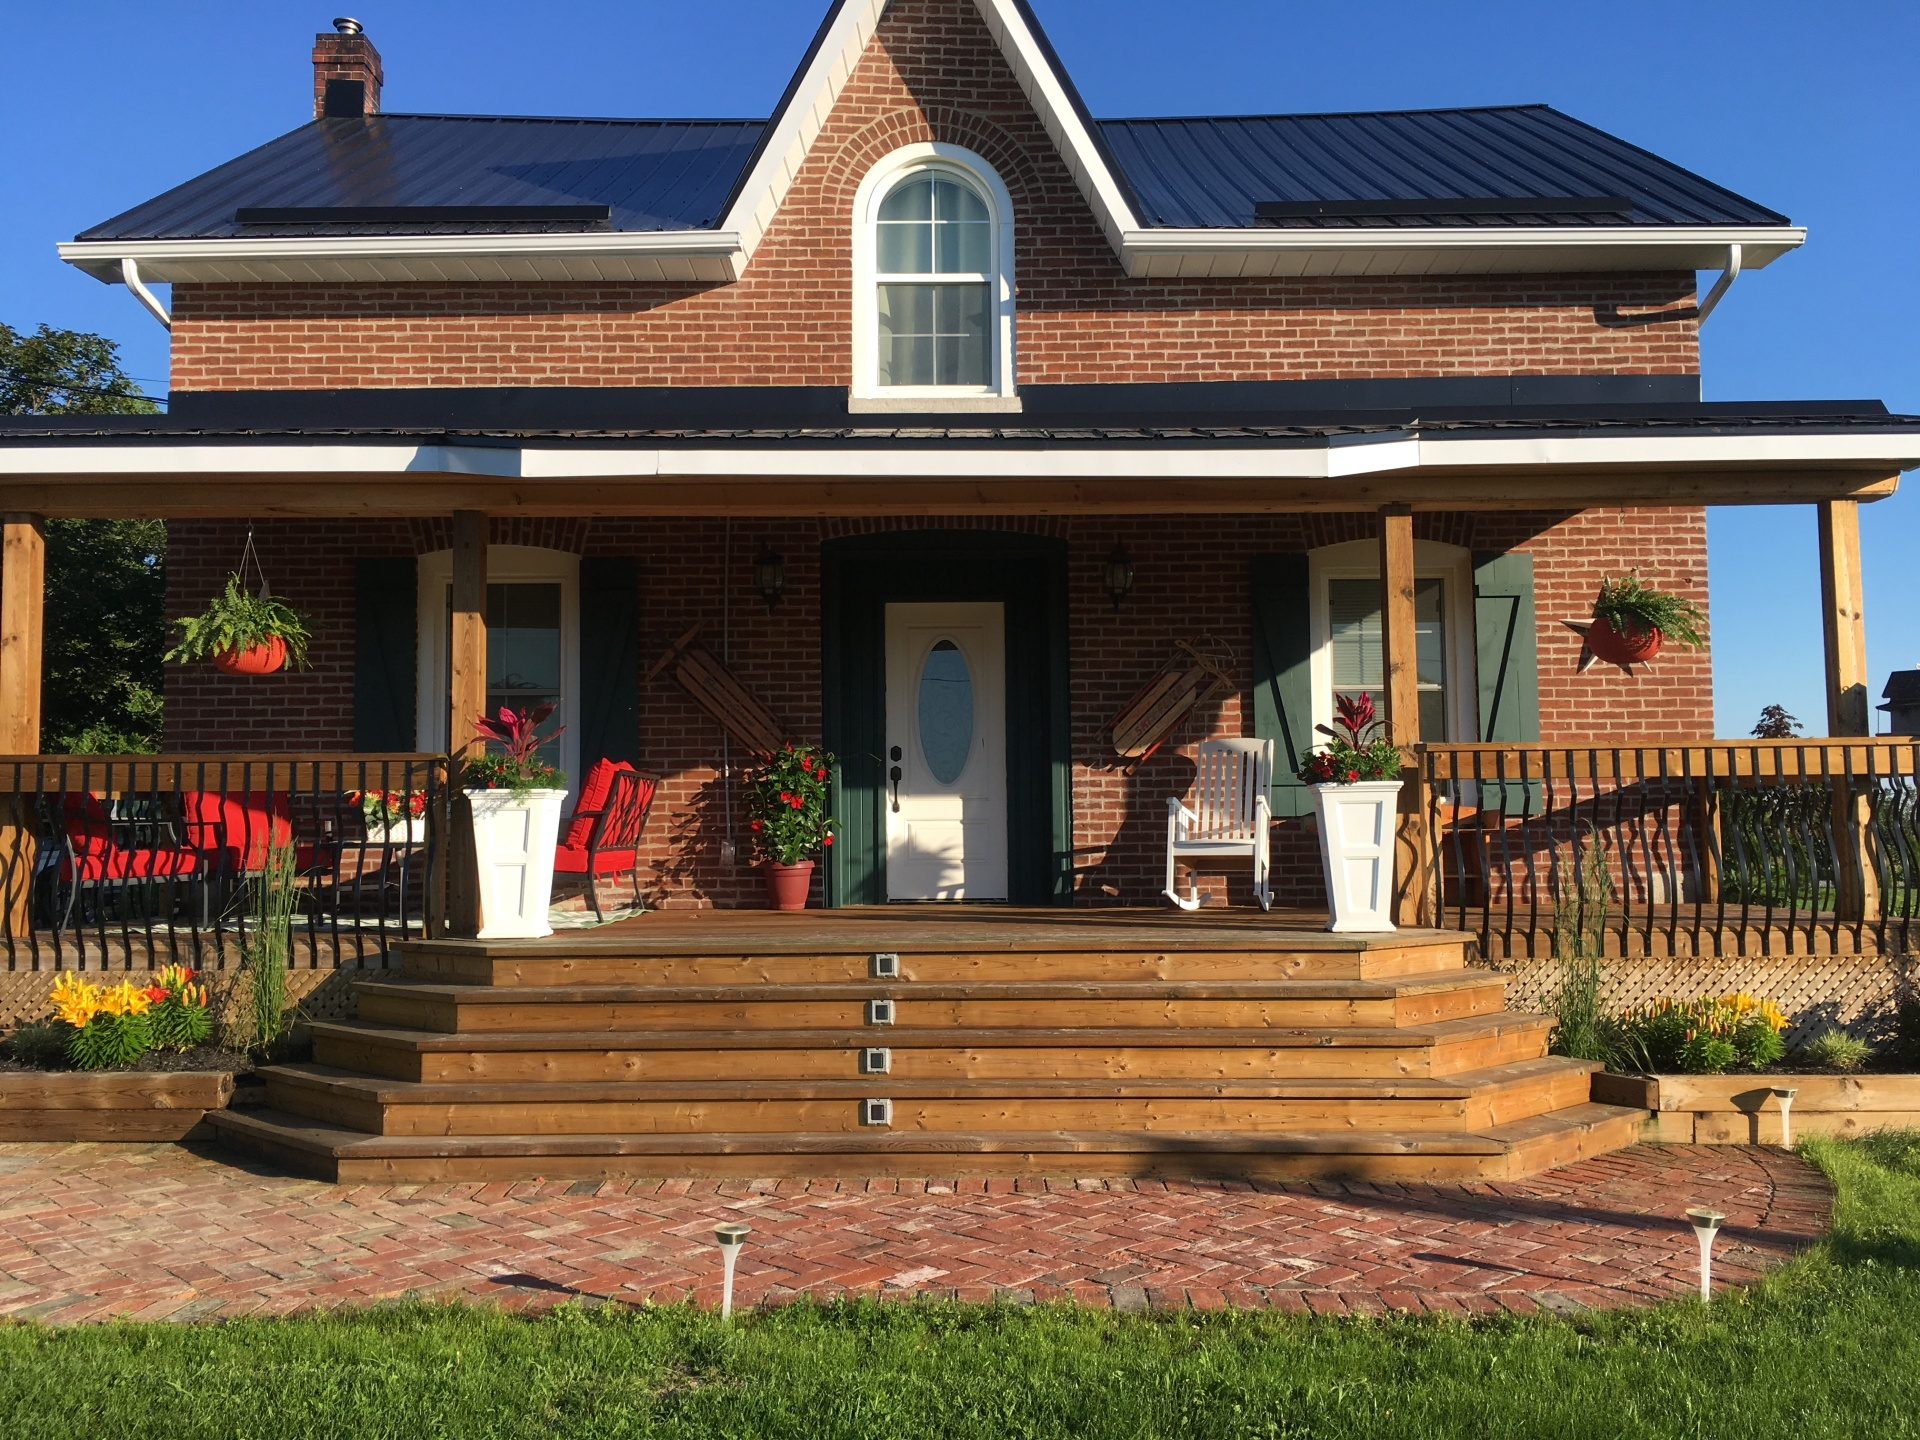 Stirling Ontario Farmhouse landscaping with red brick landing